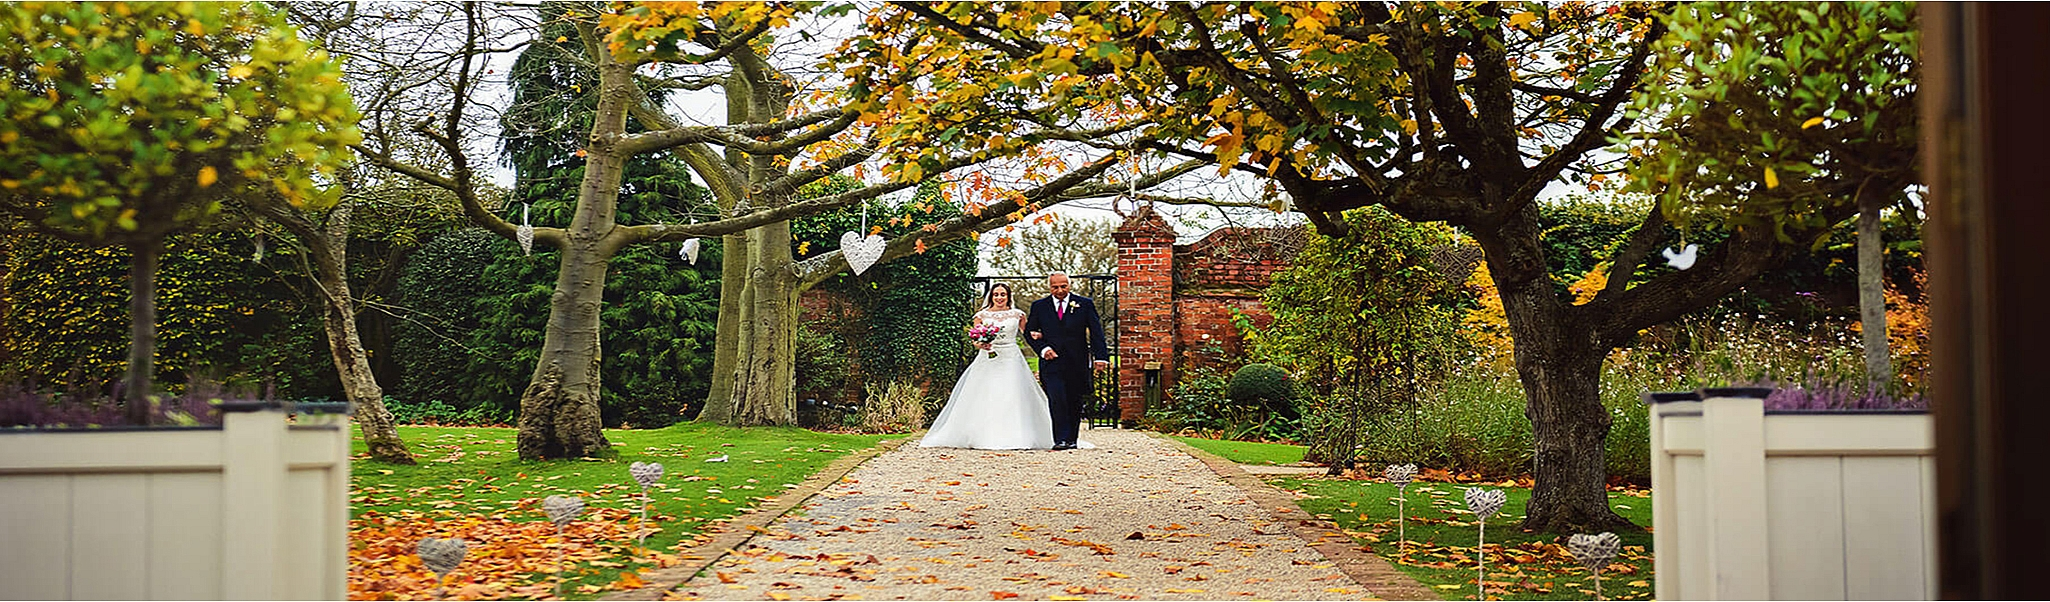 Gaynes Park Wedding Venue Epping